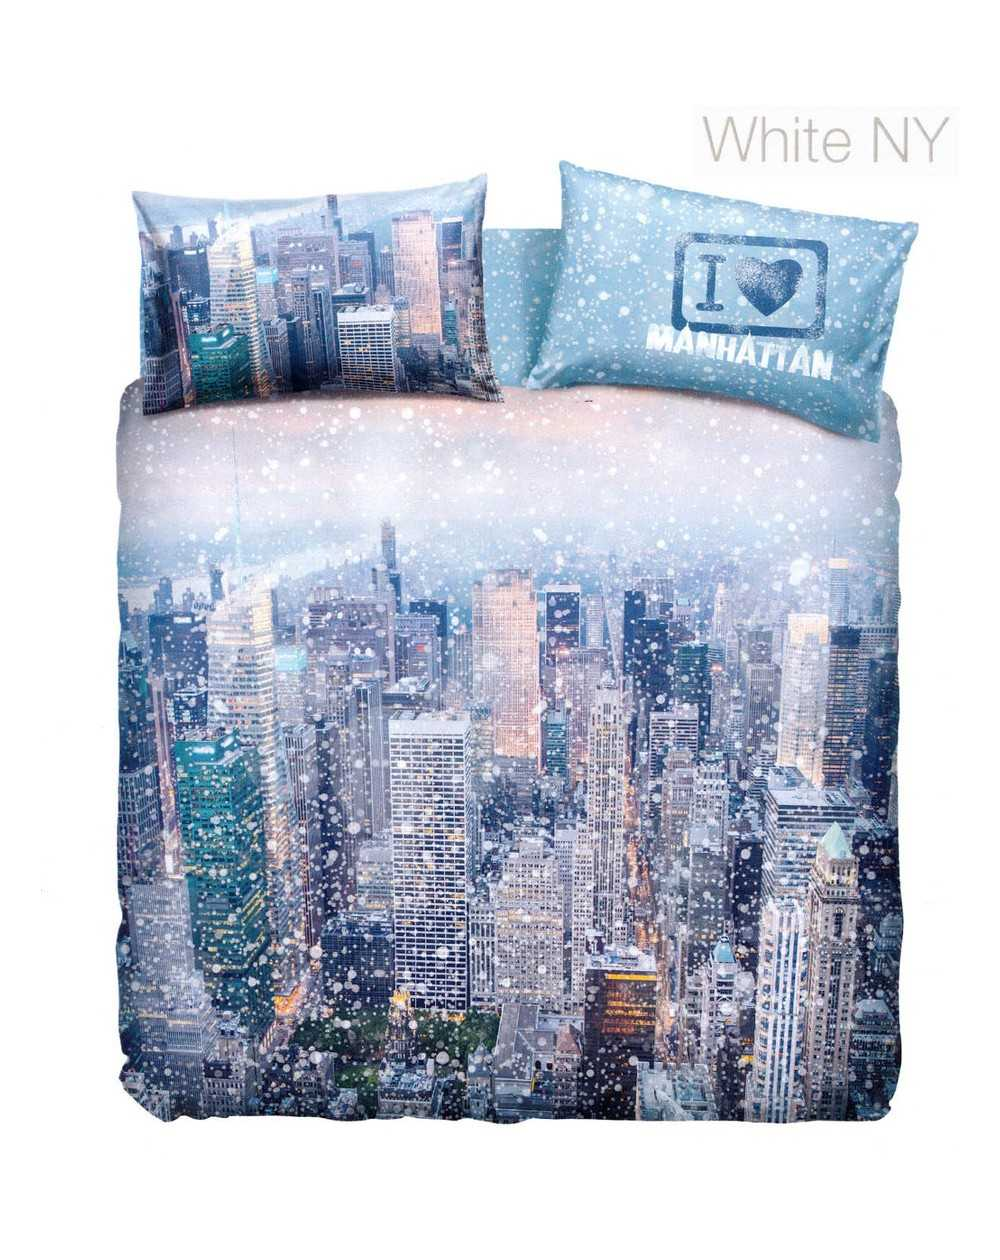 Copripiumino Matrimoniale King Size.Duvet Set Cover A Fitted Sheet And Two Pillow Cases New York By Bassetti Natura City